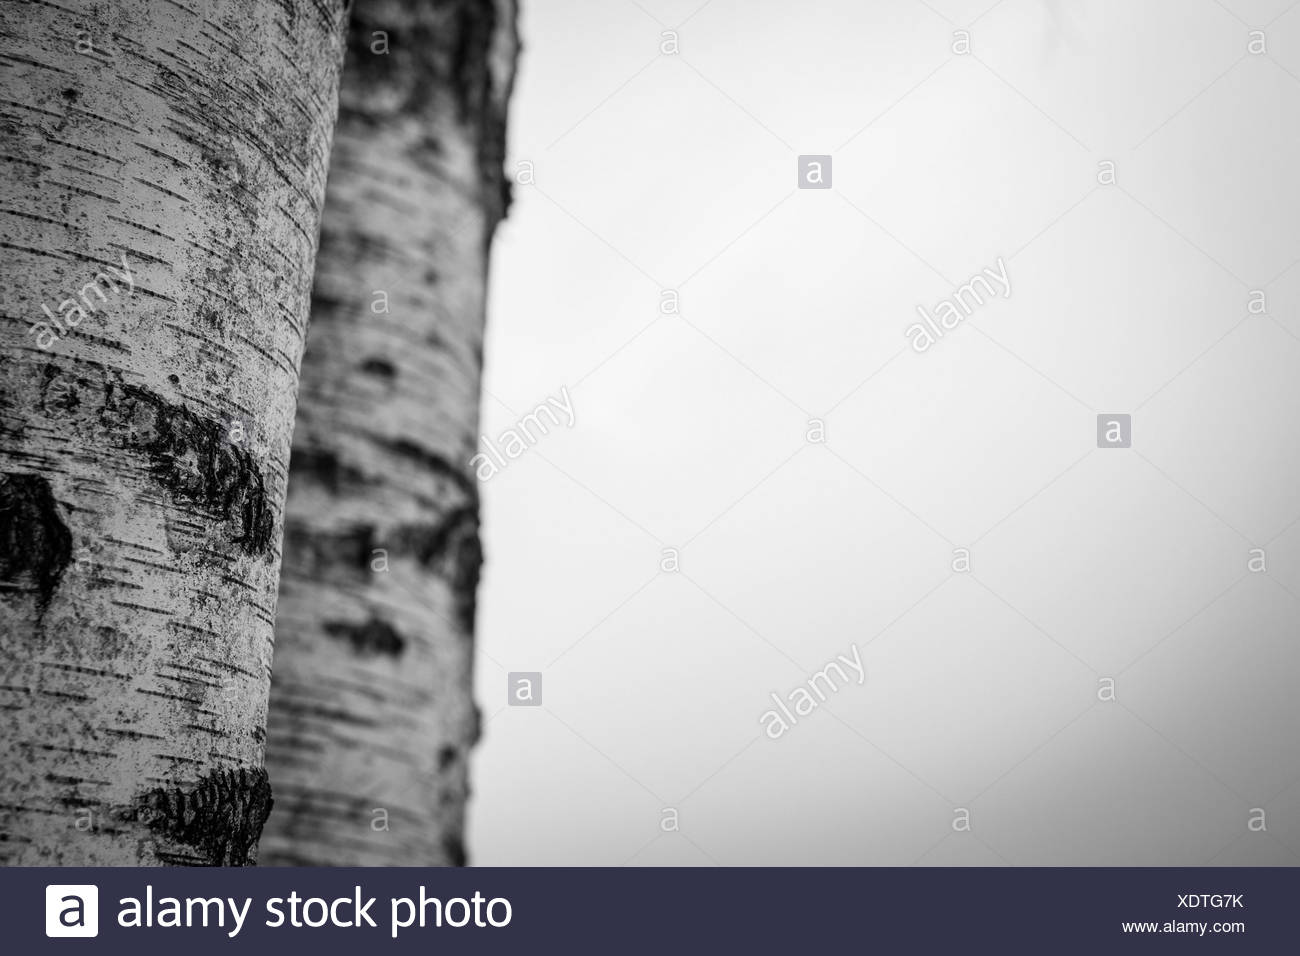 Two birch trunks in black and white, Seefeld, Oberbayern, Bavaria, Germany - Stock Image